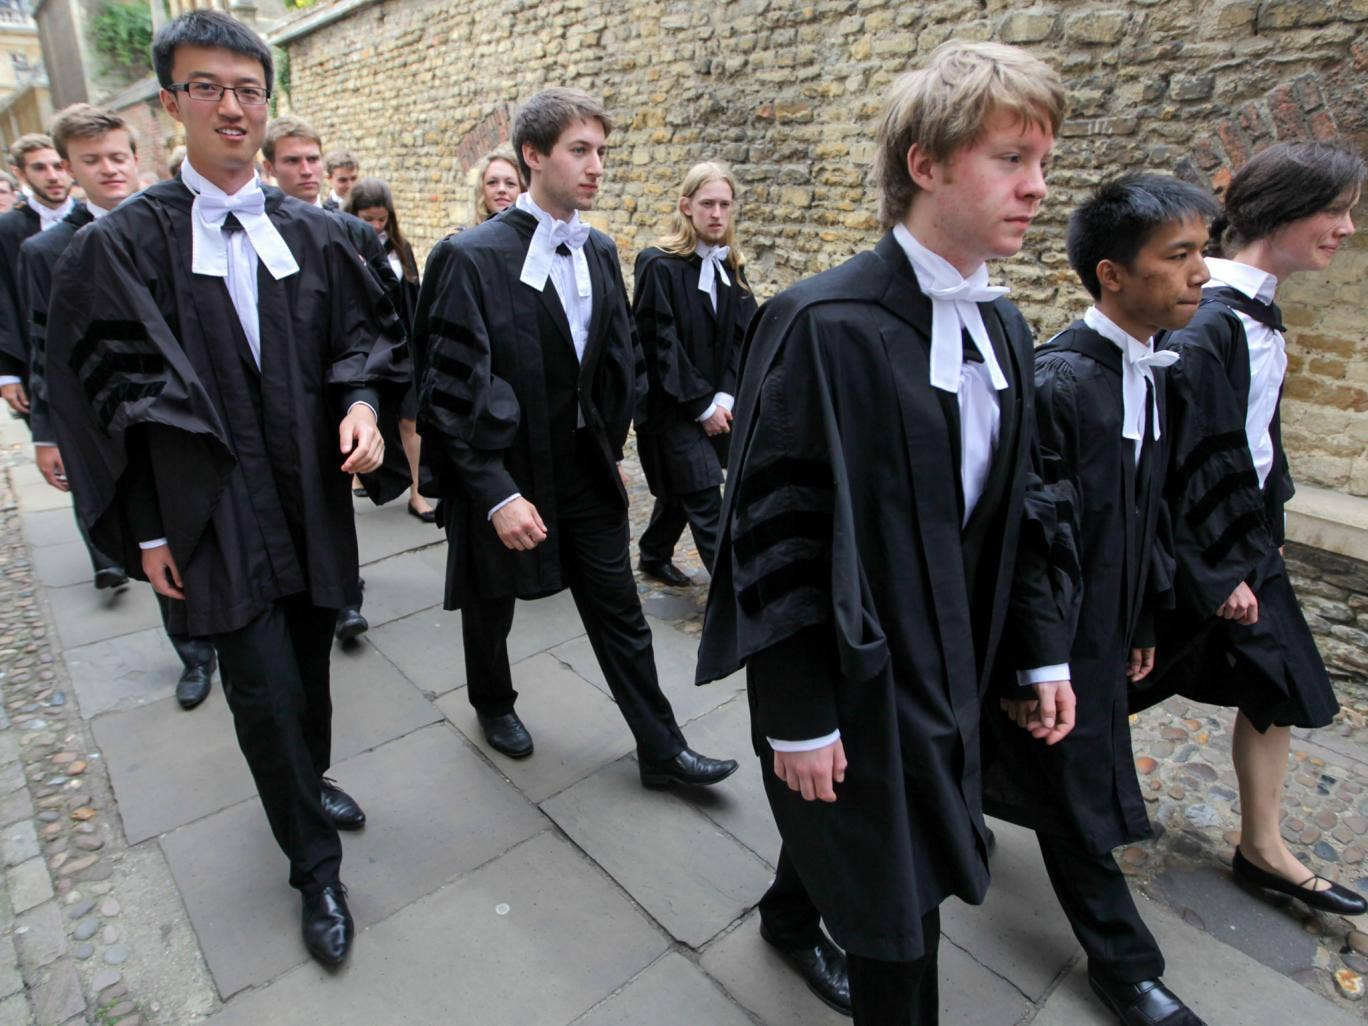 Cambridge University students on Graduation Day earlier this year